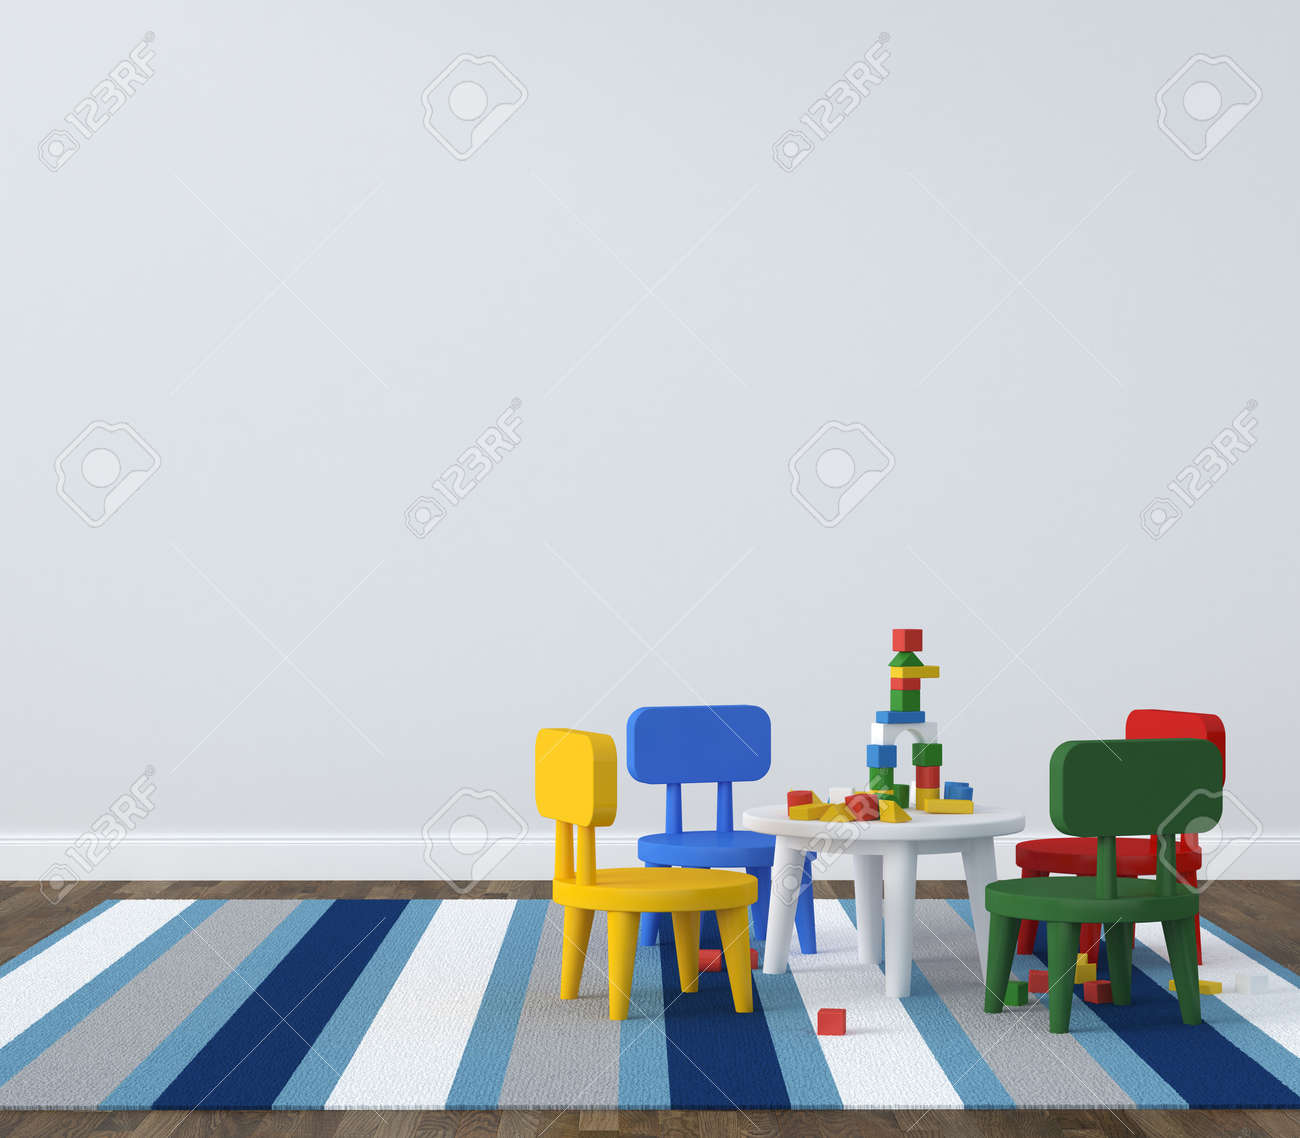 Kids Room Kids Room Images Stock Pictures Royalty Free Kids Room Photos